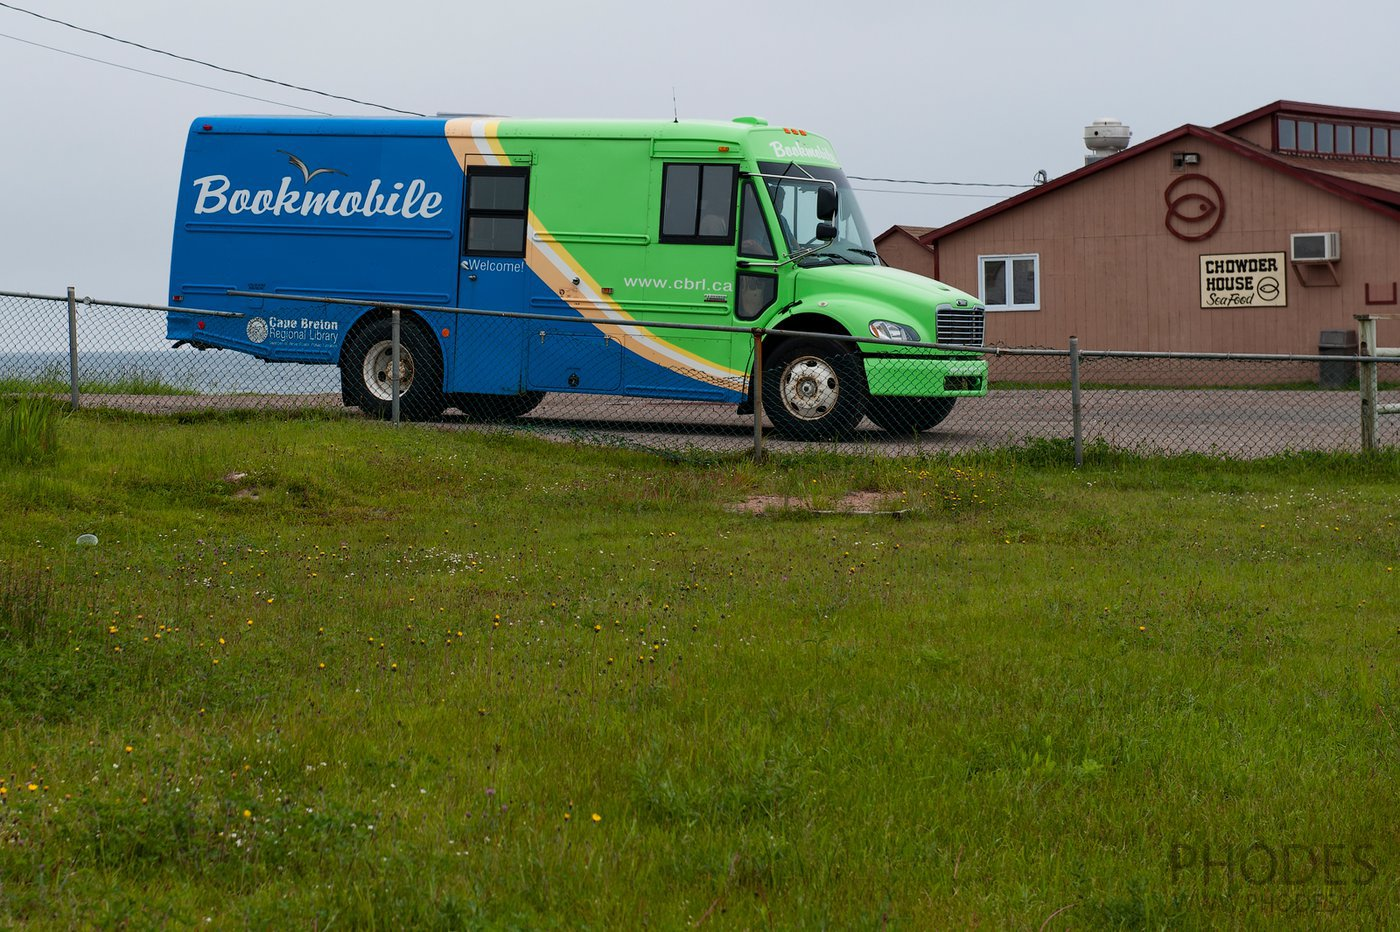 Bookmobile on Cape Breton Island in Nova Scotia